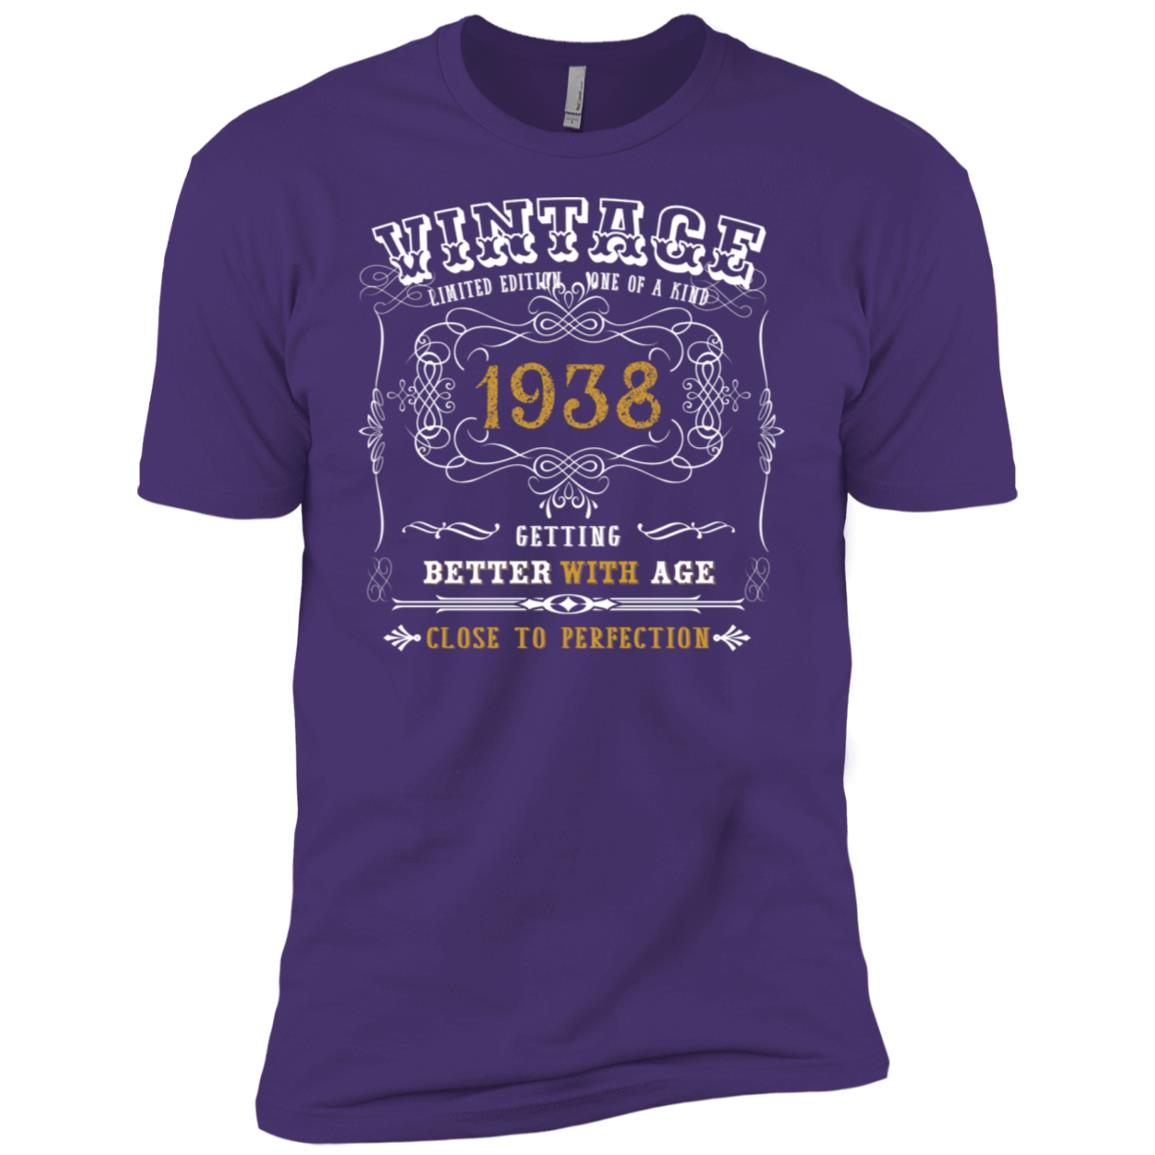 80th year old Funny Birthday Gifts 1938 Limited Edition Tee Men Short Sleeve T-Shirt